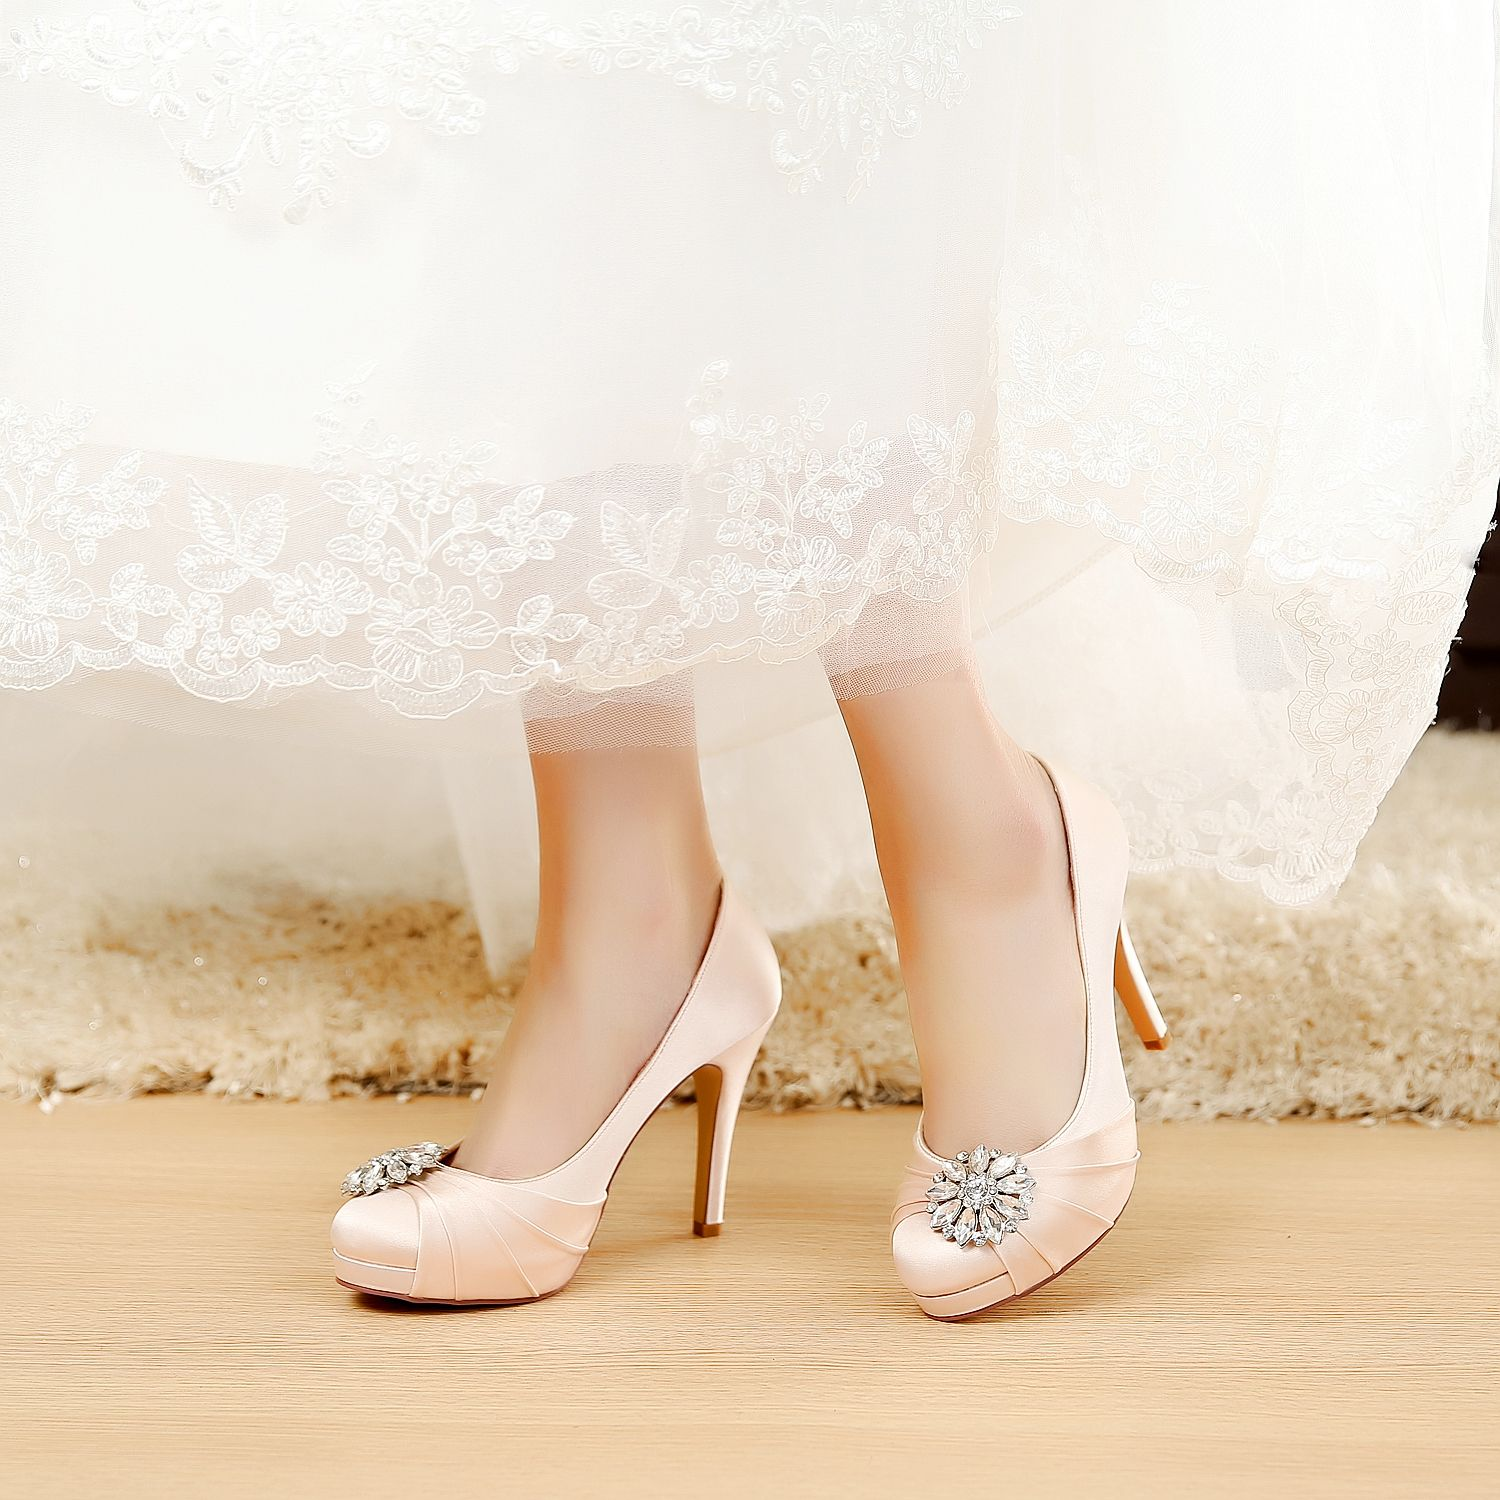 comfortable bridal t shoes wedding finds philippines comforter hurt your wont marche won heels march that